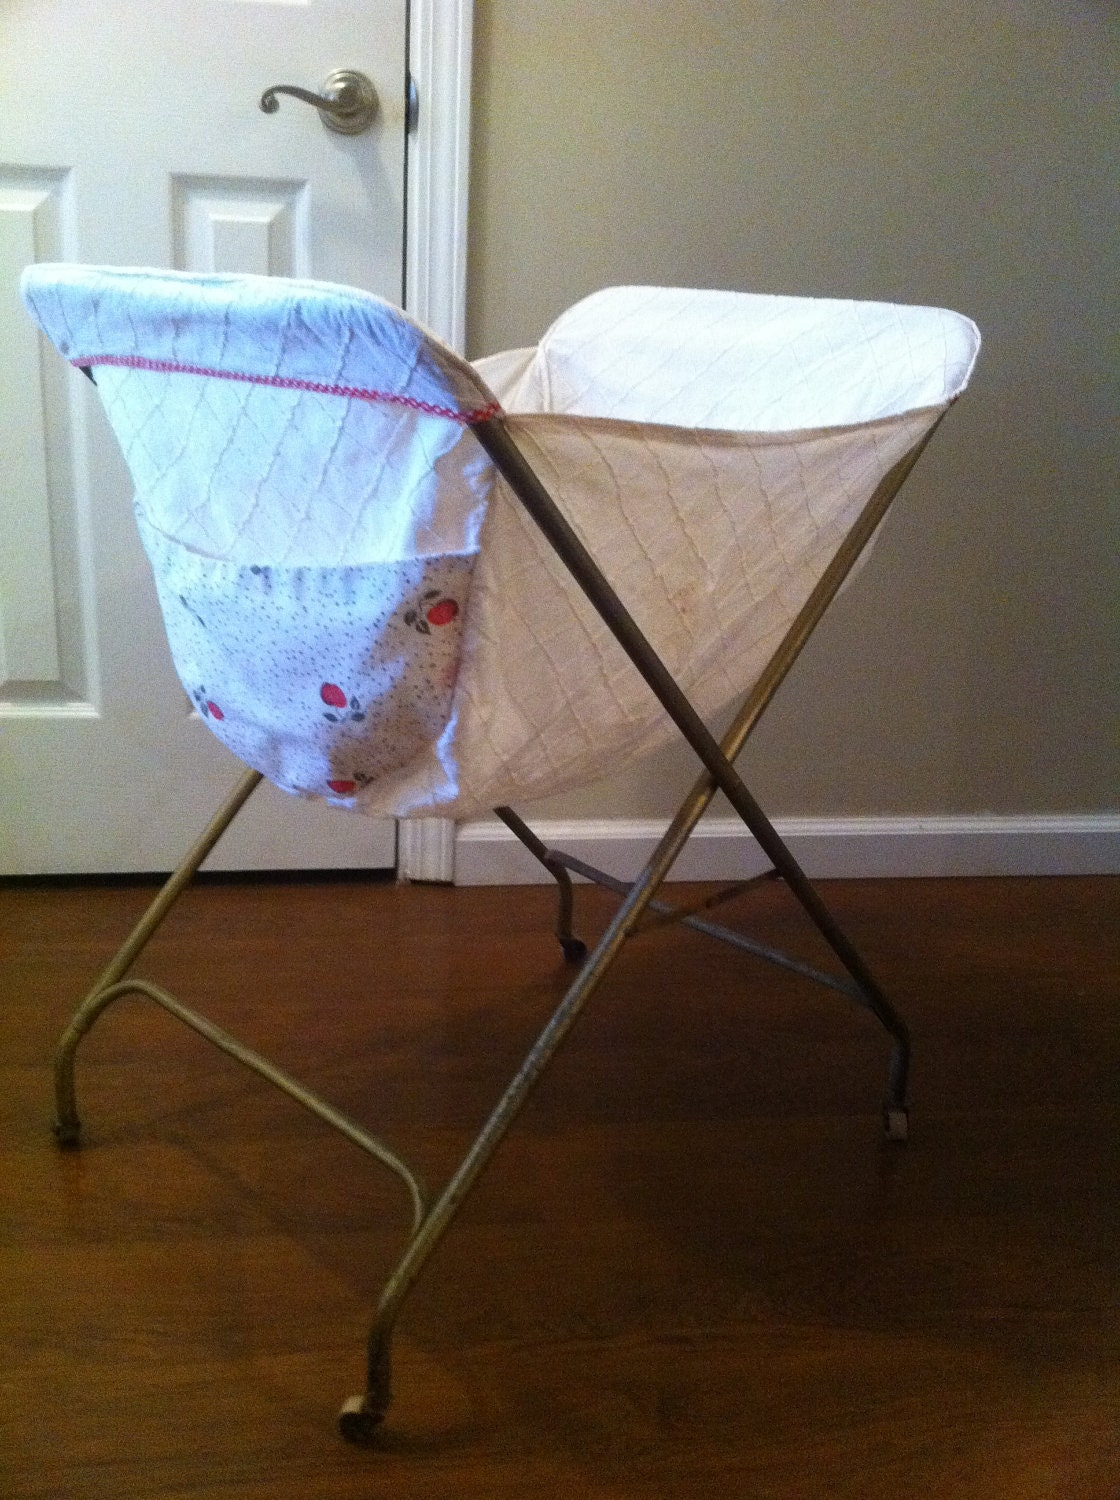 Vintage Fold Up Laundry Cart with Wooden Wheels